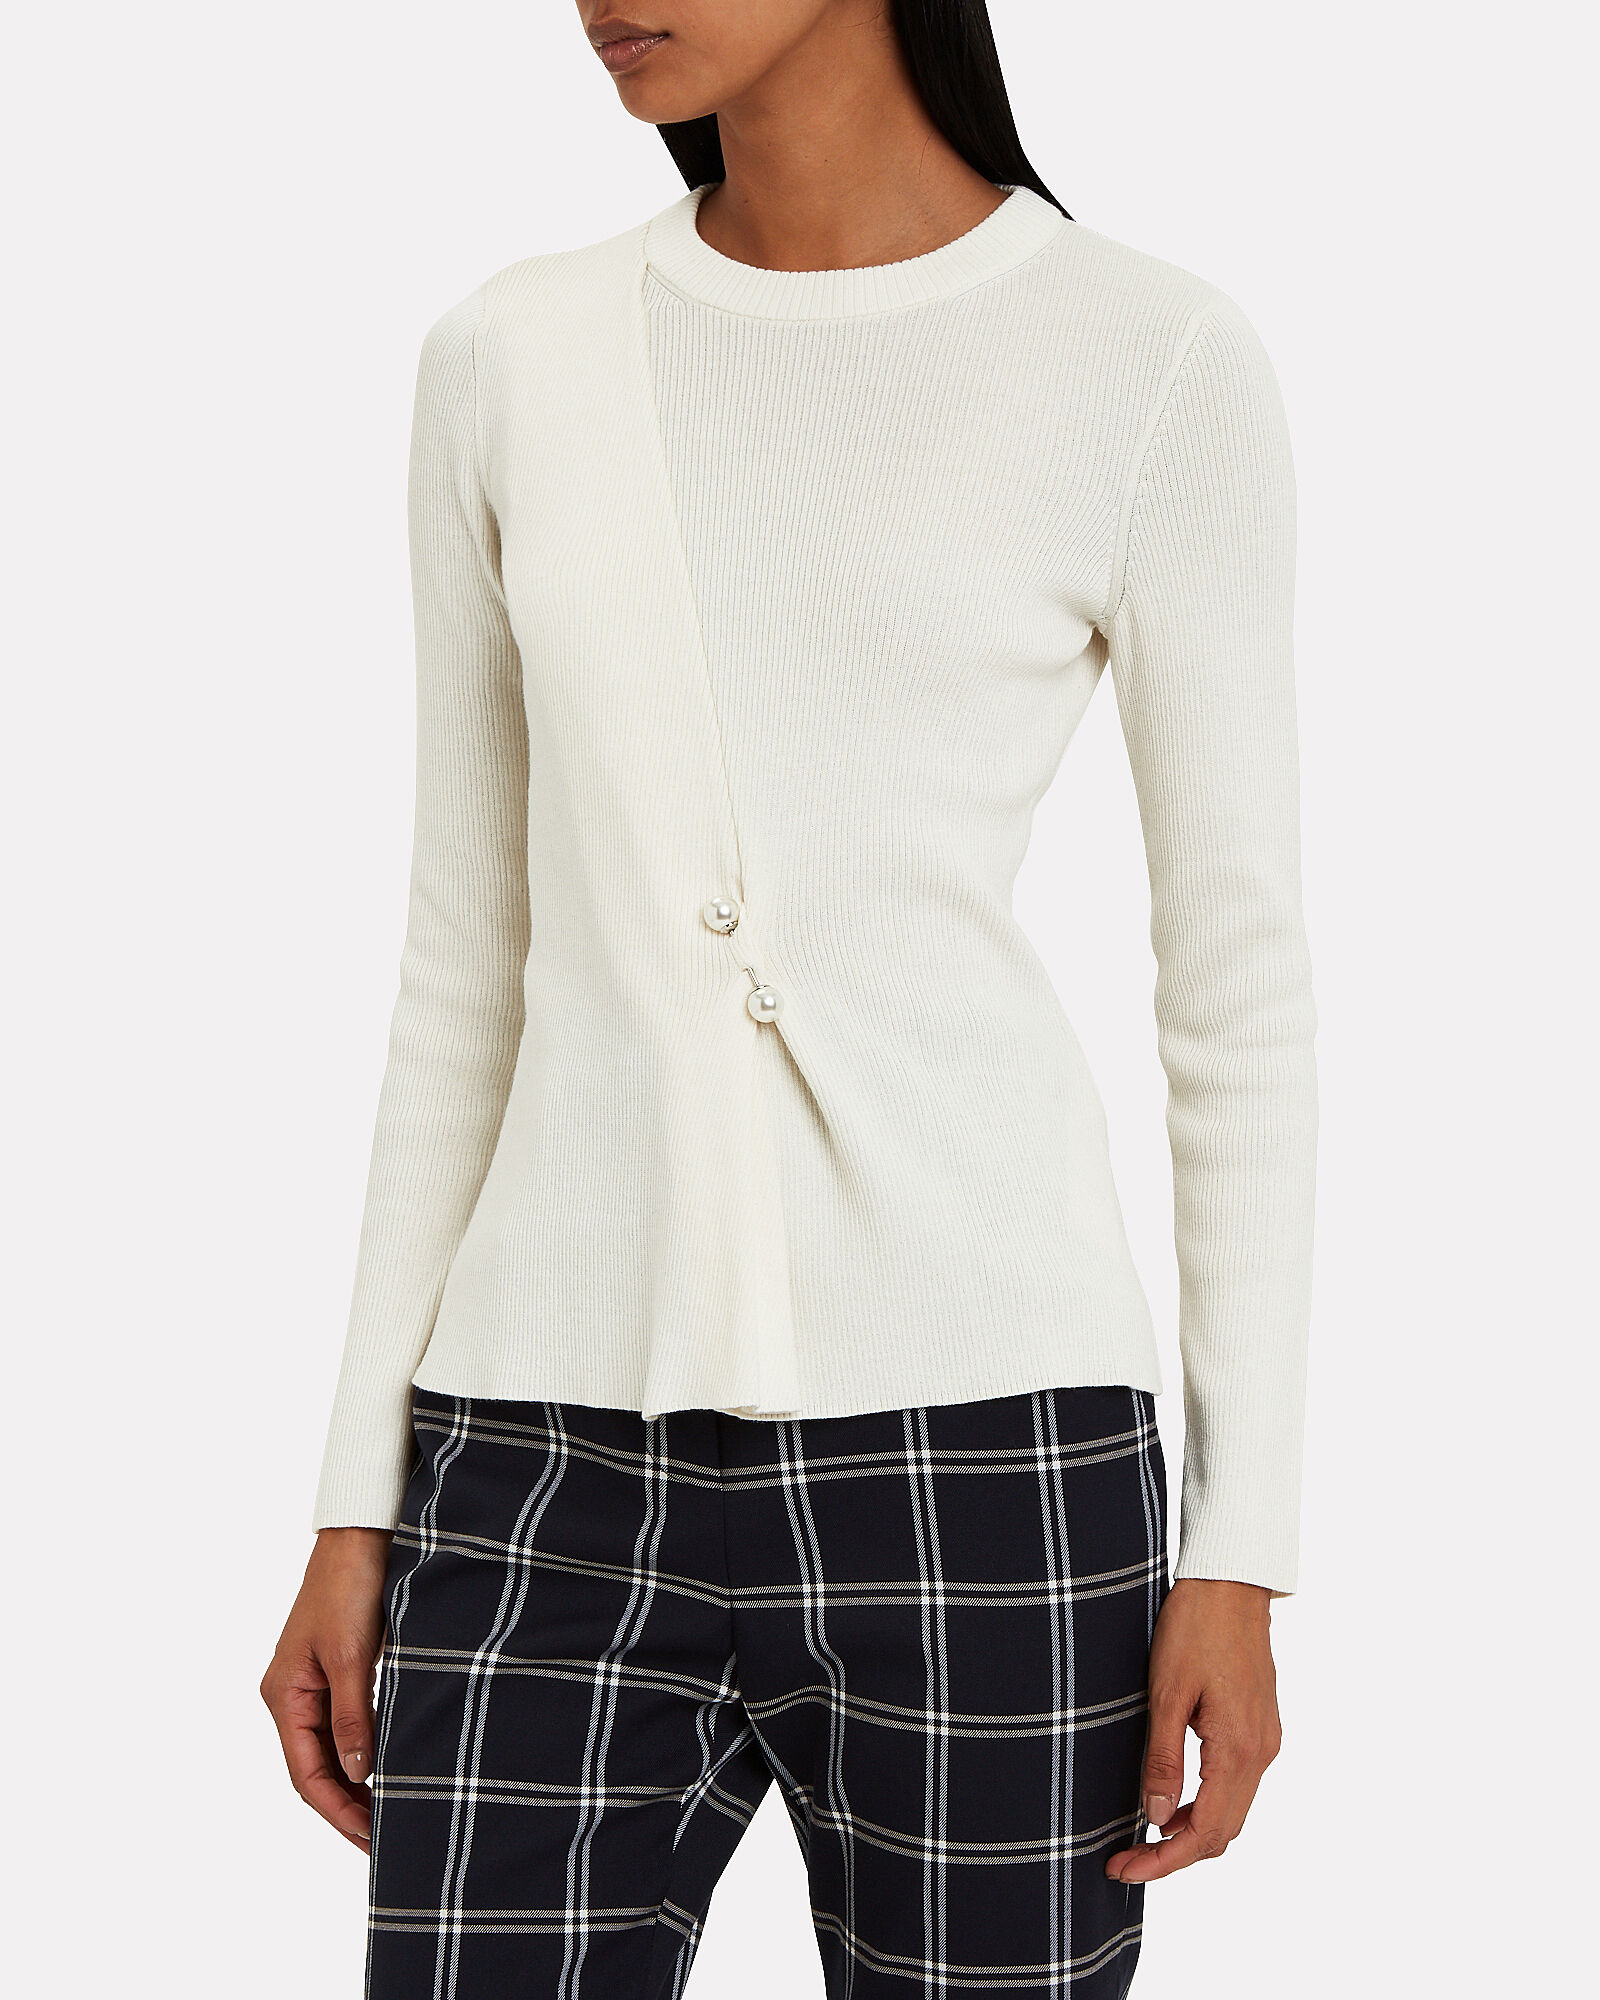 Pearl Brooch-Embellished Sweater, WHITE, hi-res